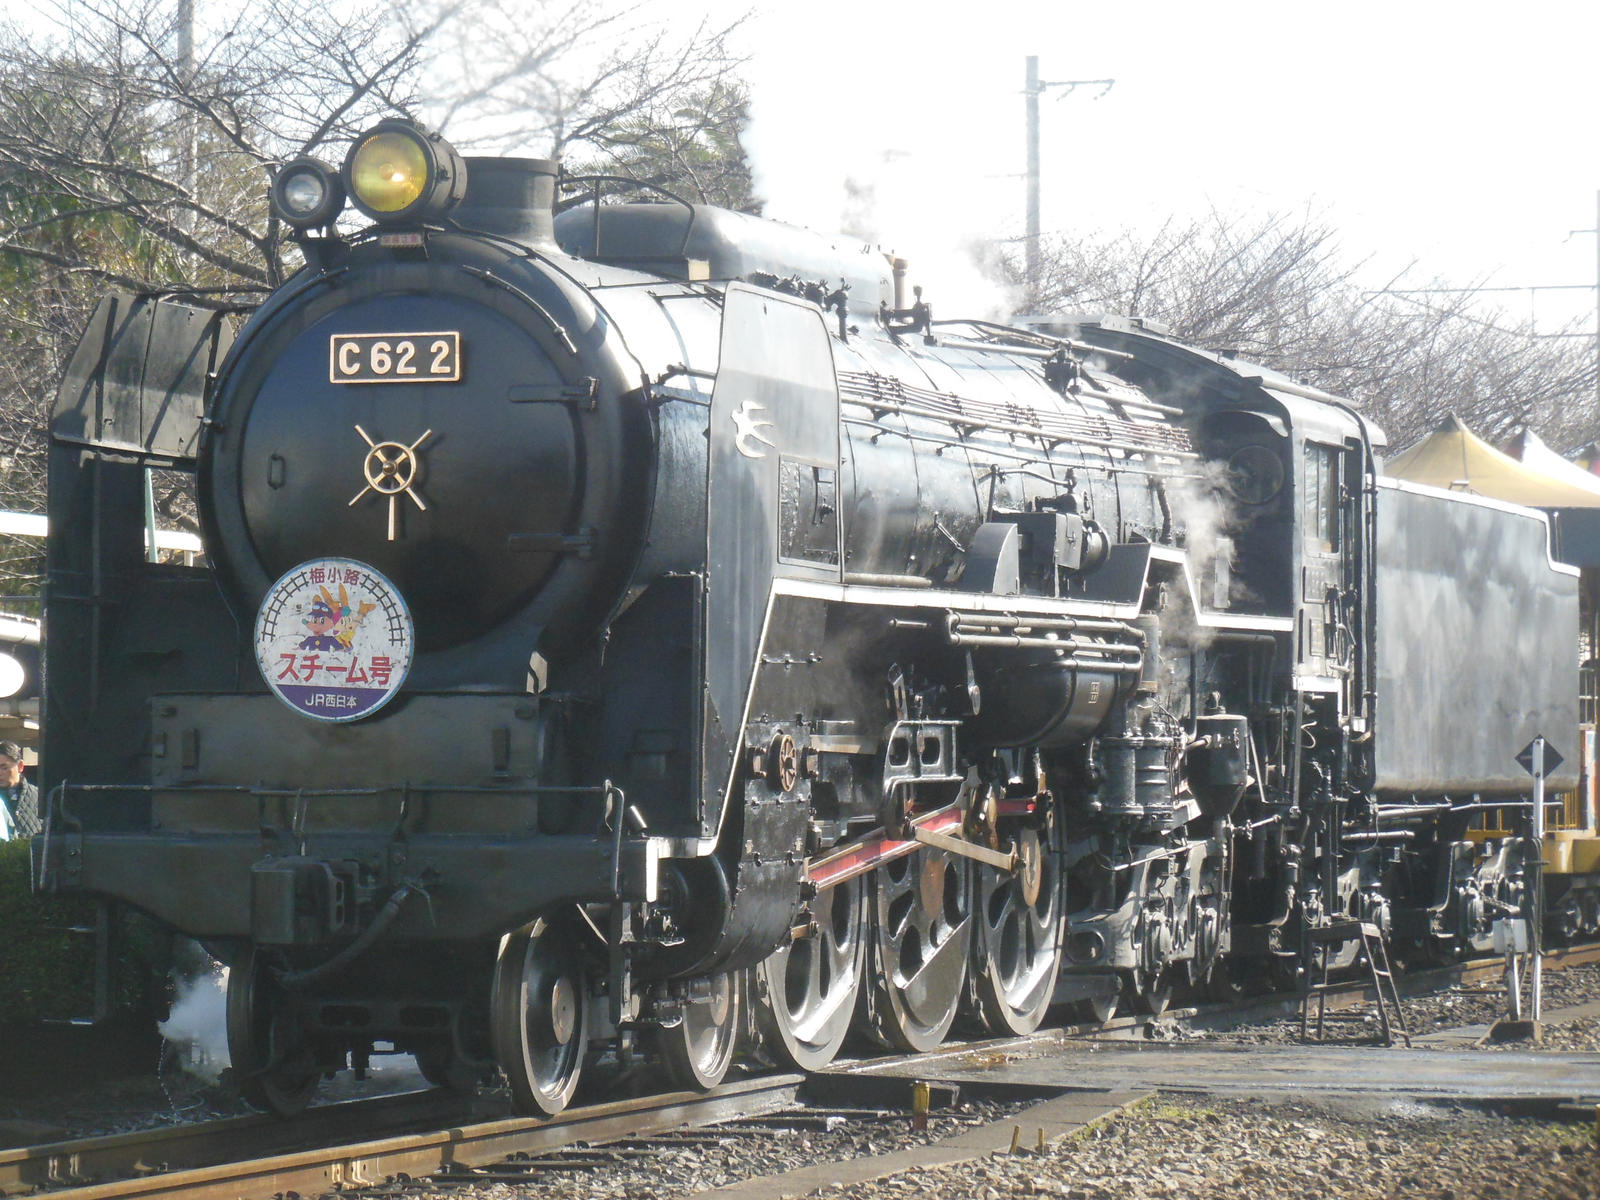 West Japan Rly. Co. C62.2 at Umekoji SL Museum by ...